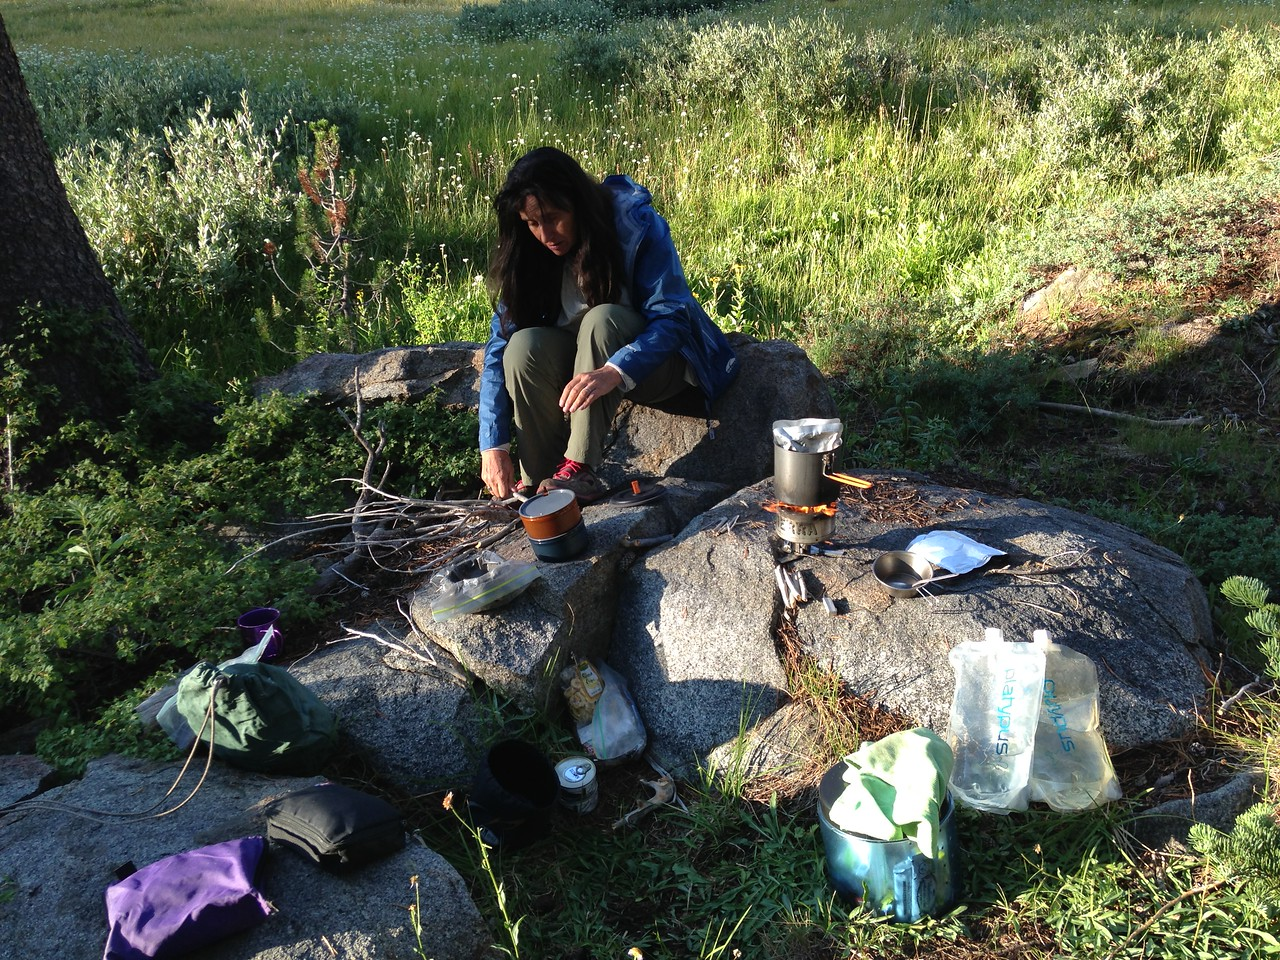 Preparing dinner near our campsite. Pouches of Trader Joe's Indian food, and canned salmon! I'm definitely a lightweight hiker, yet the weight I save with a light pack and tent is well worth a bit of offset for tasty food on a shorter hike such as this.